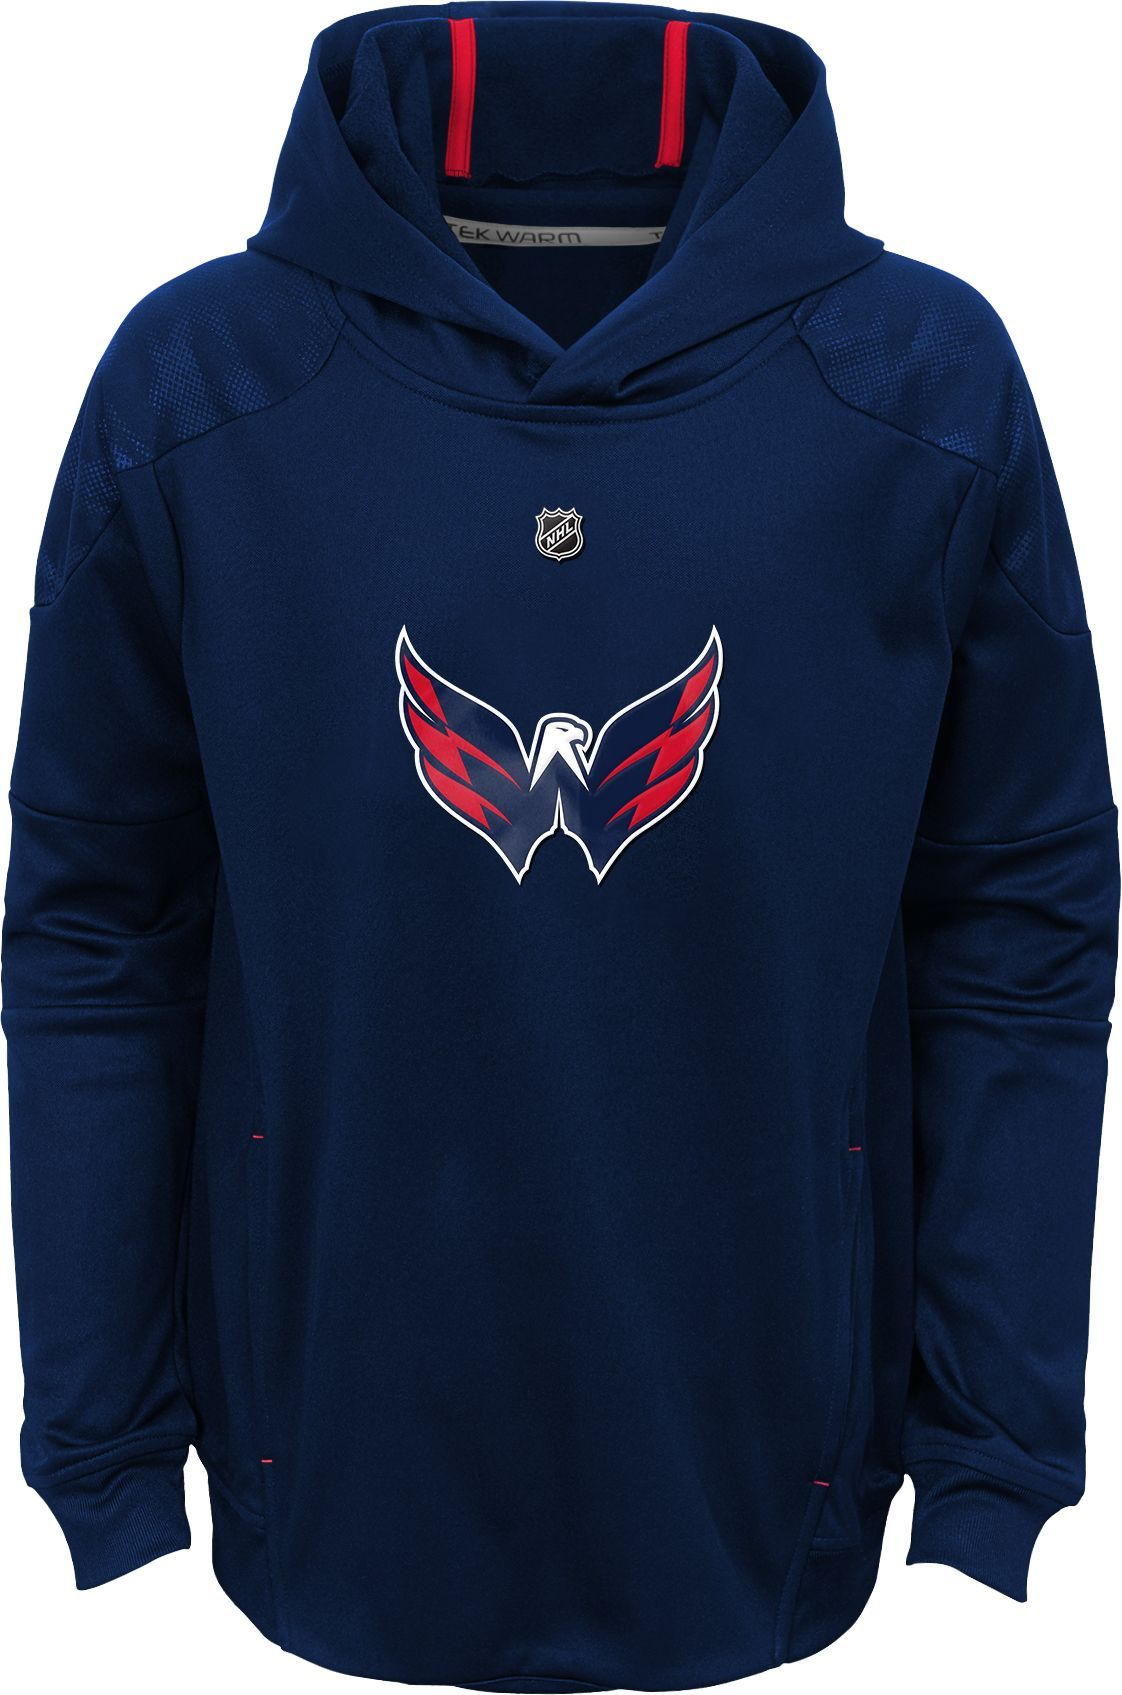 NHL Youth Washington Capitals Mach Red Pullover Hoodie fa9061448